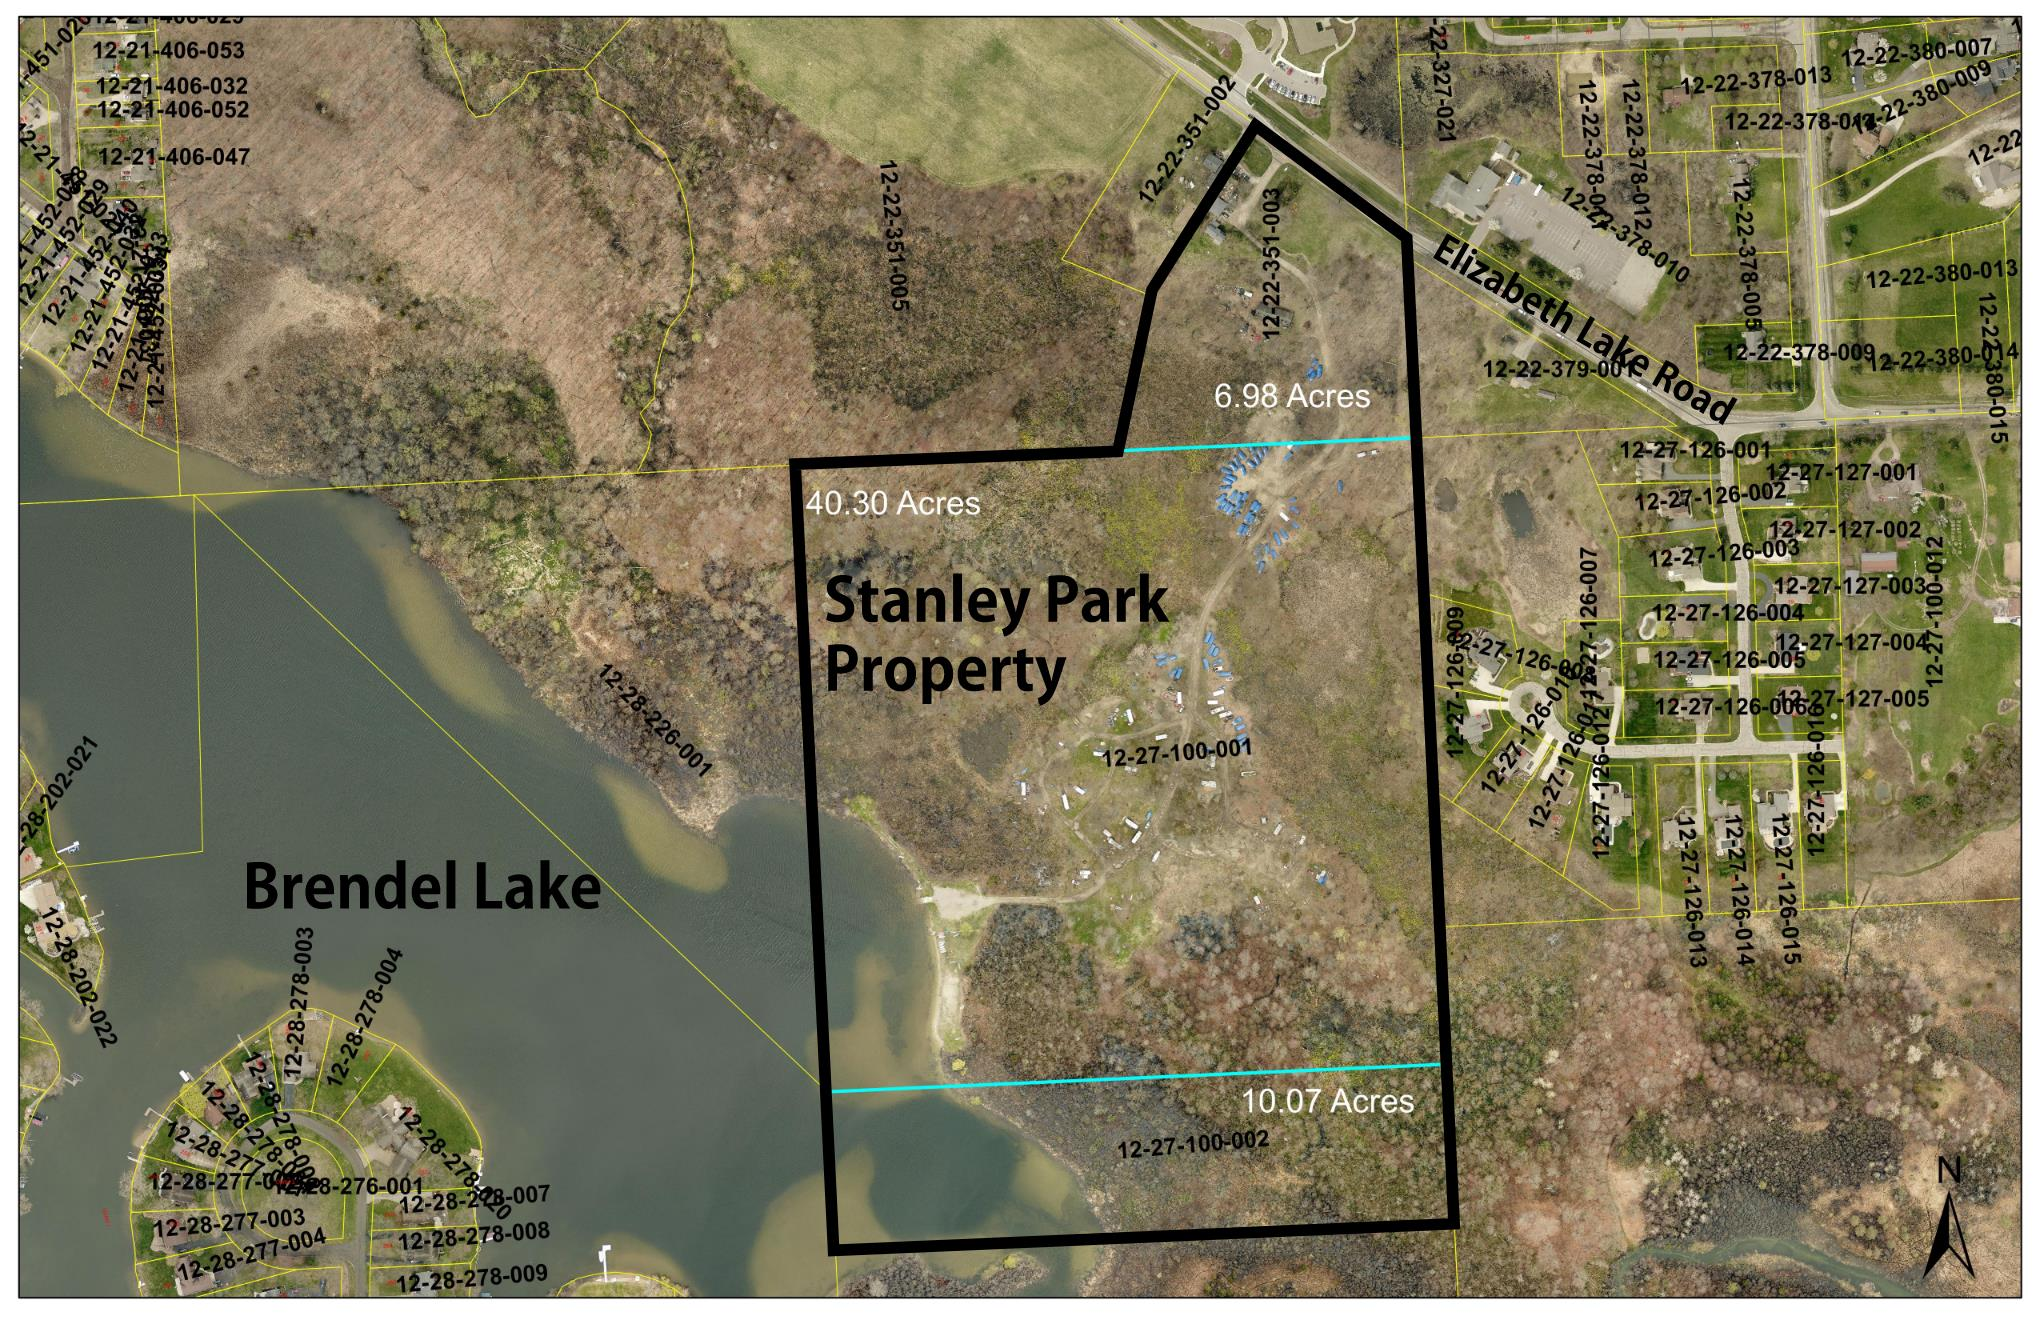 Stanley Park Property Aerial View